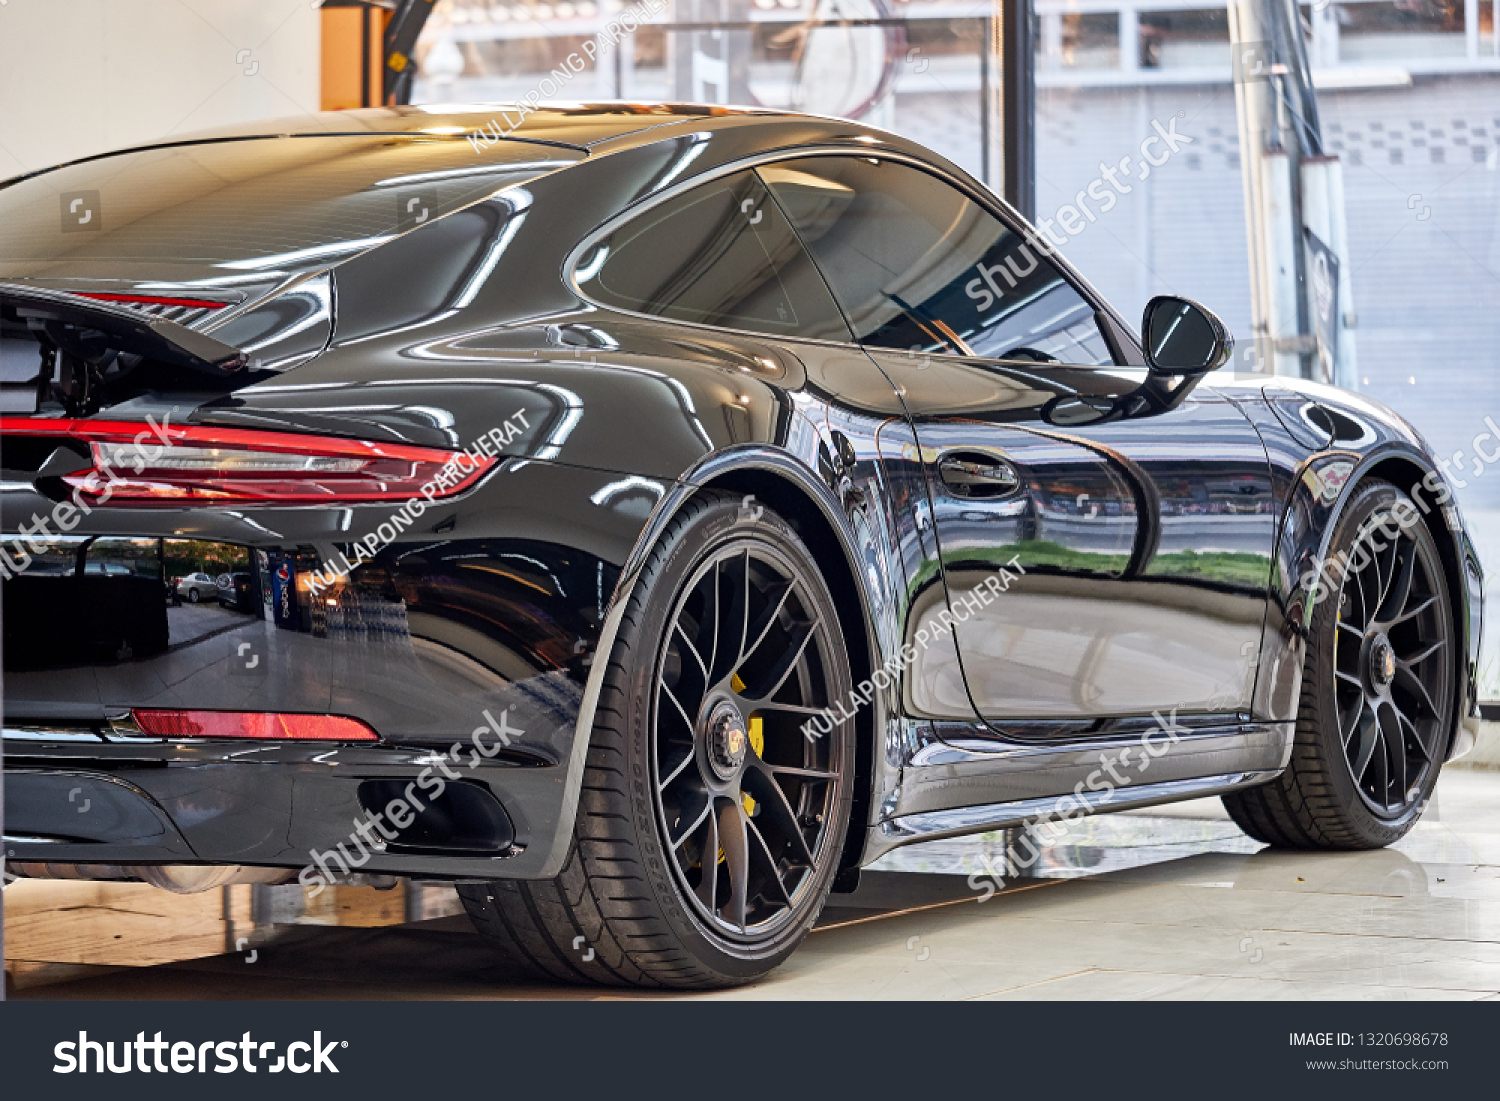 Garage Porsche Strasbourg Bangkok Thailand February 21 2019 Shiny Stock Photo Edit Now